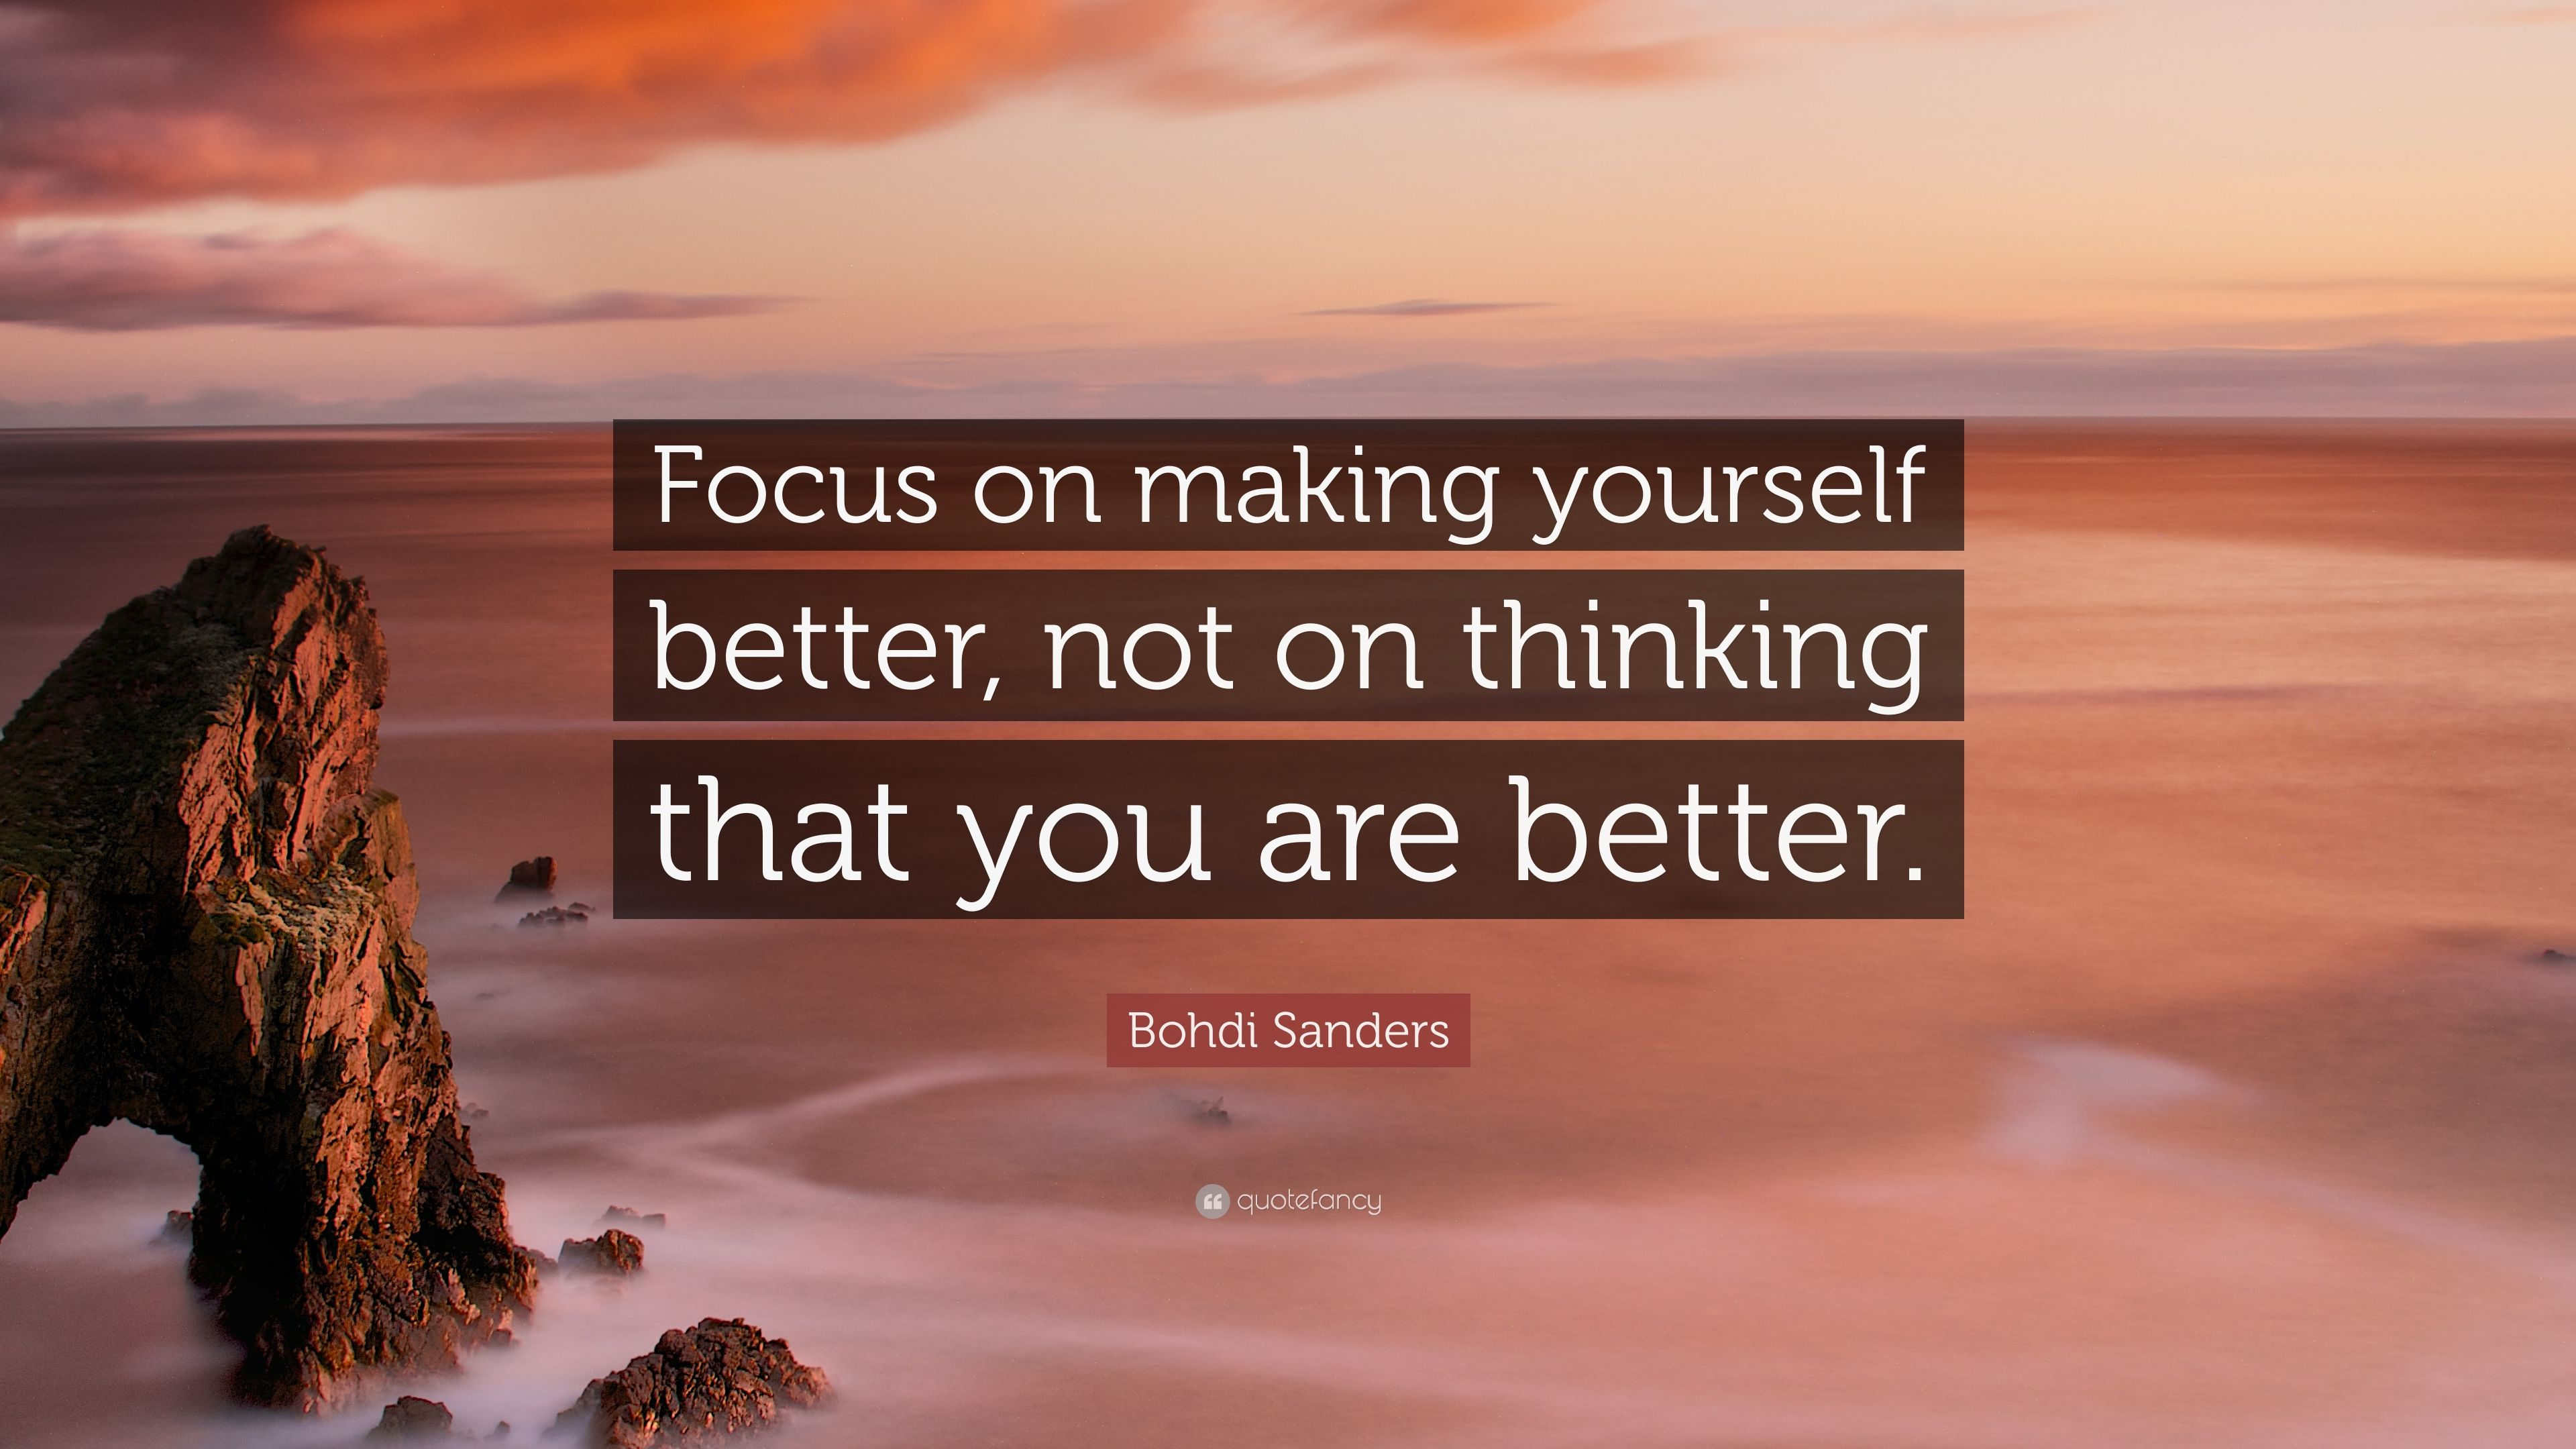 Bohdi Sanders Quote: Focus on making yourself better, not